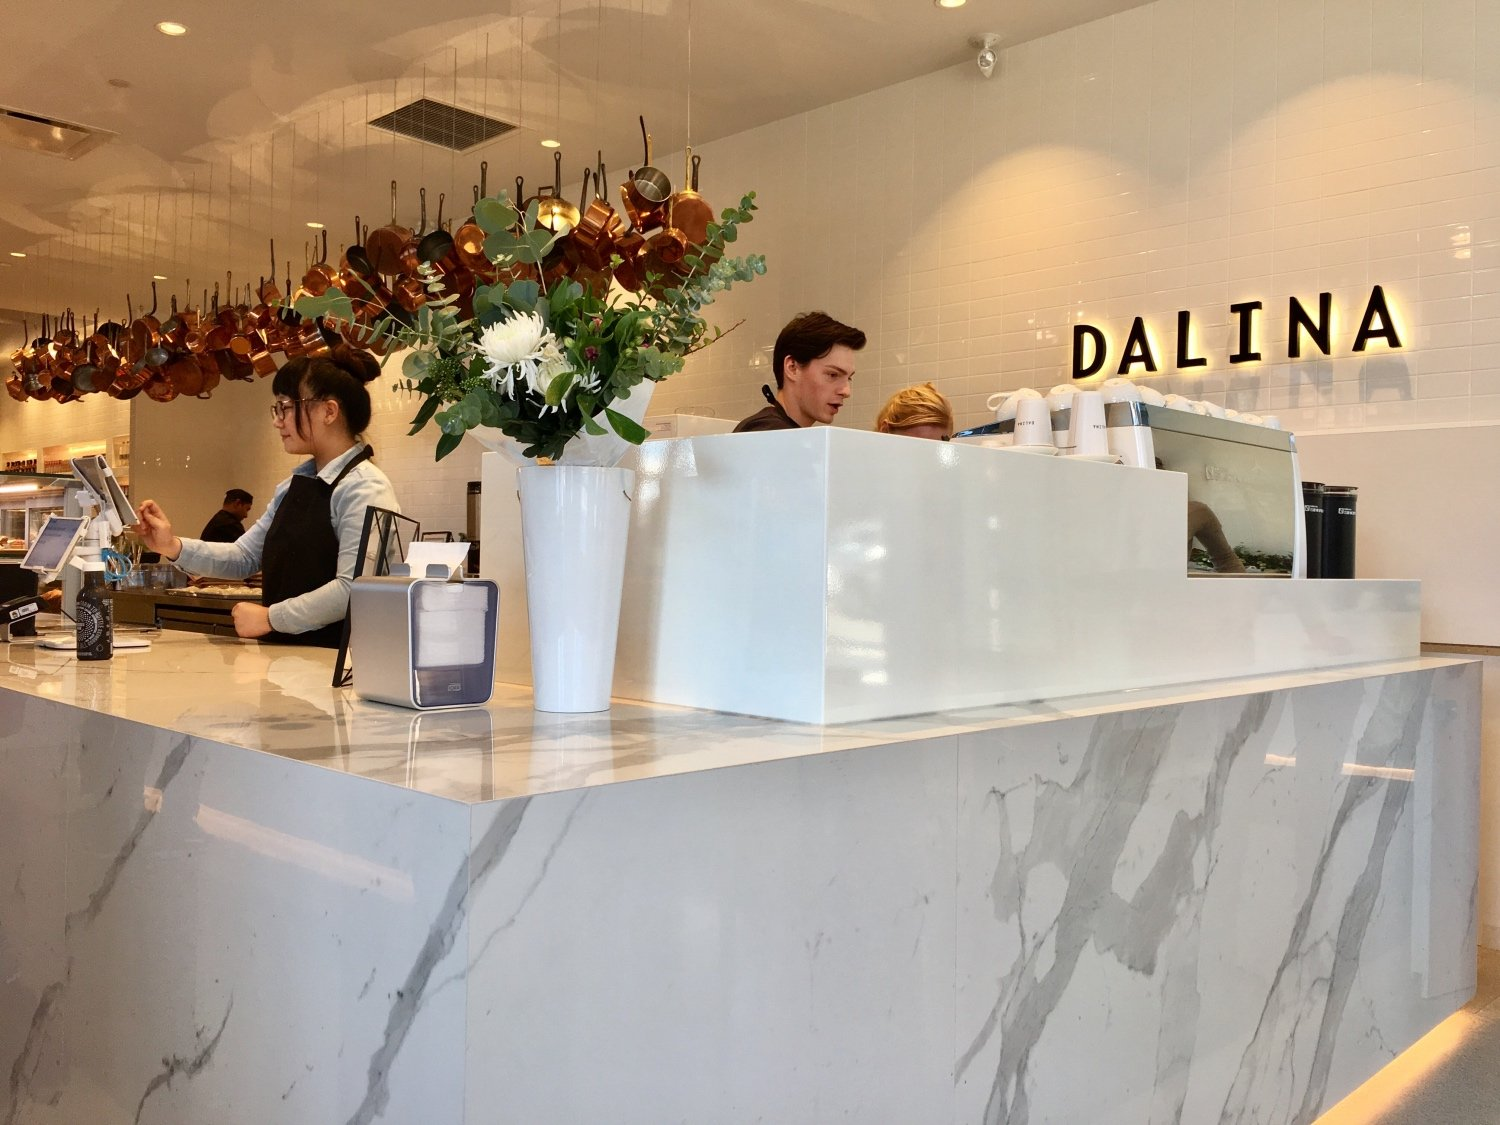 Dalina coffee bar